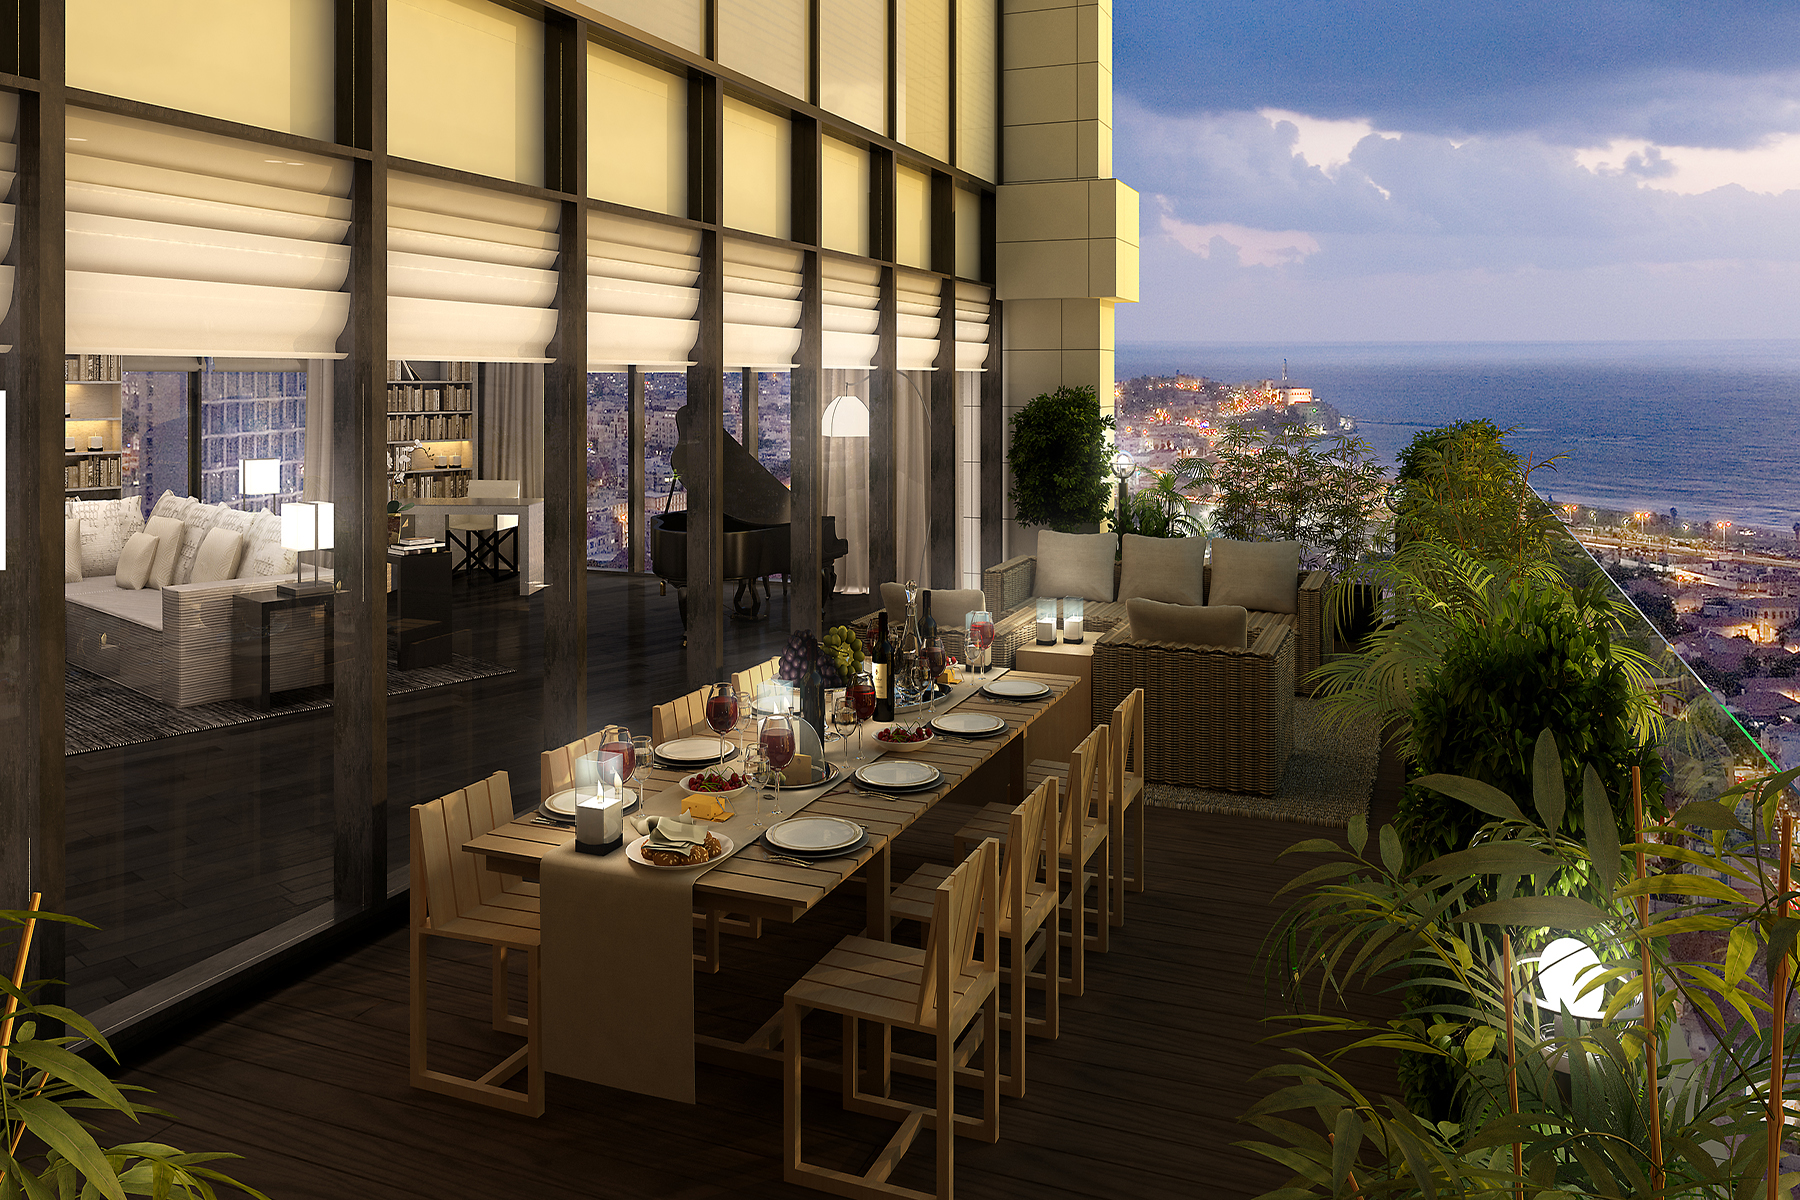 Apartment for Sale at Exquisite Penthouse Designed by Giorgio Armani Tel Aviv, Israel Israel